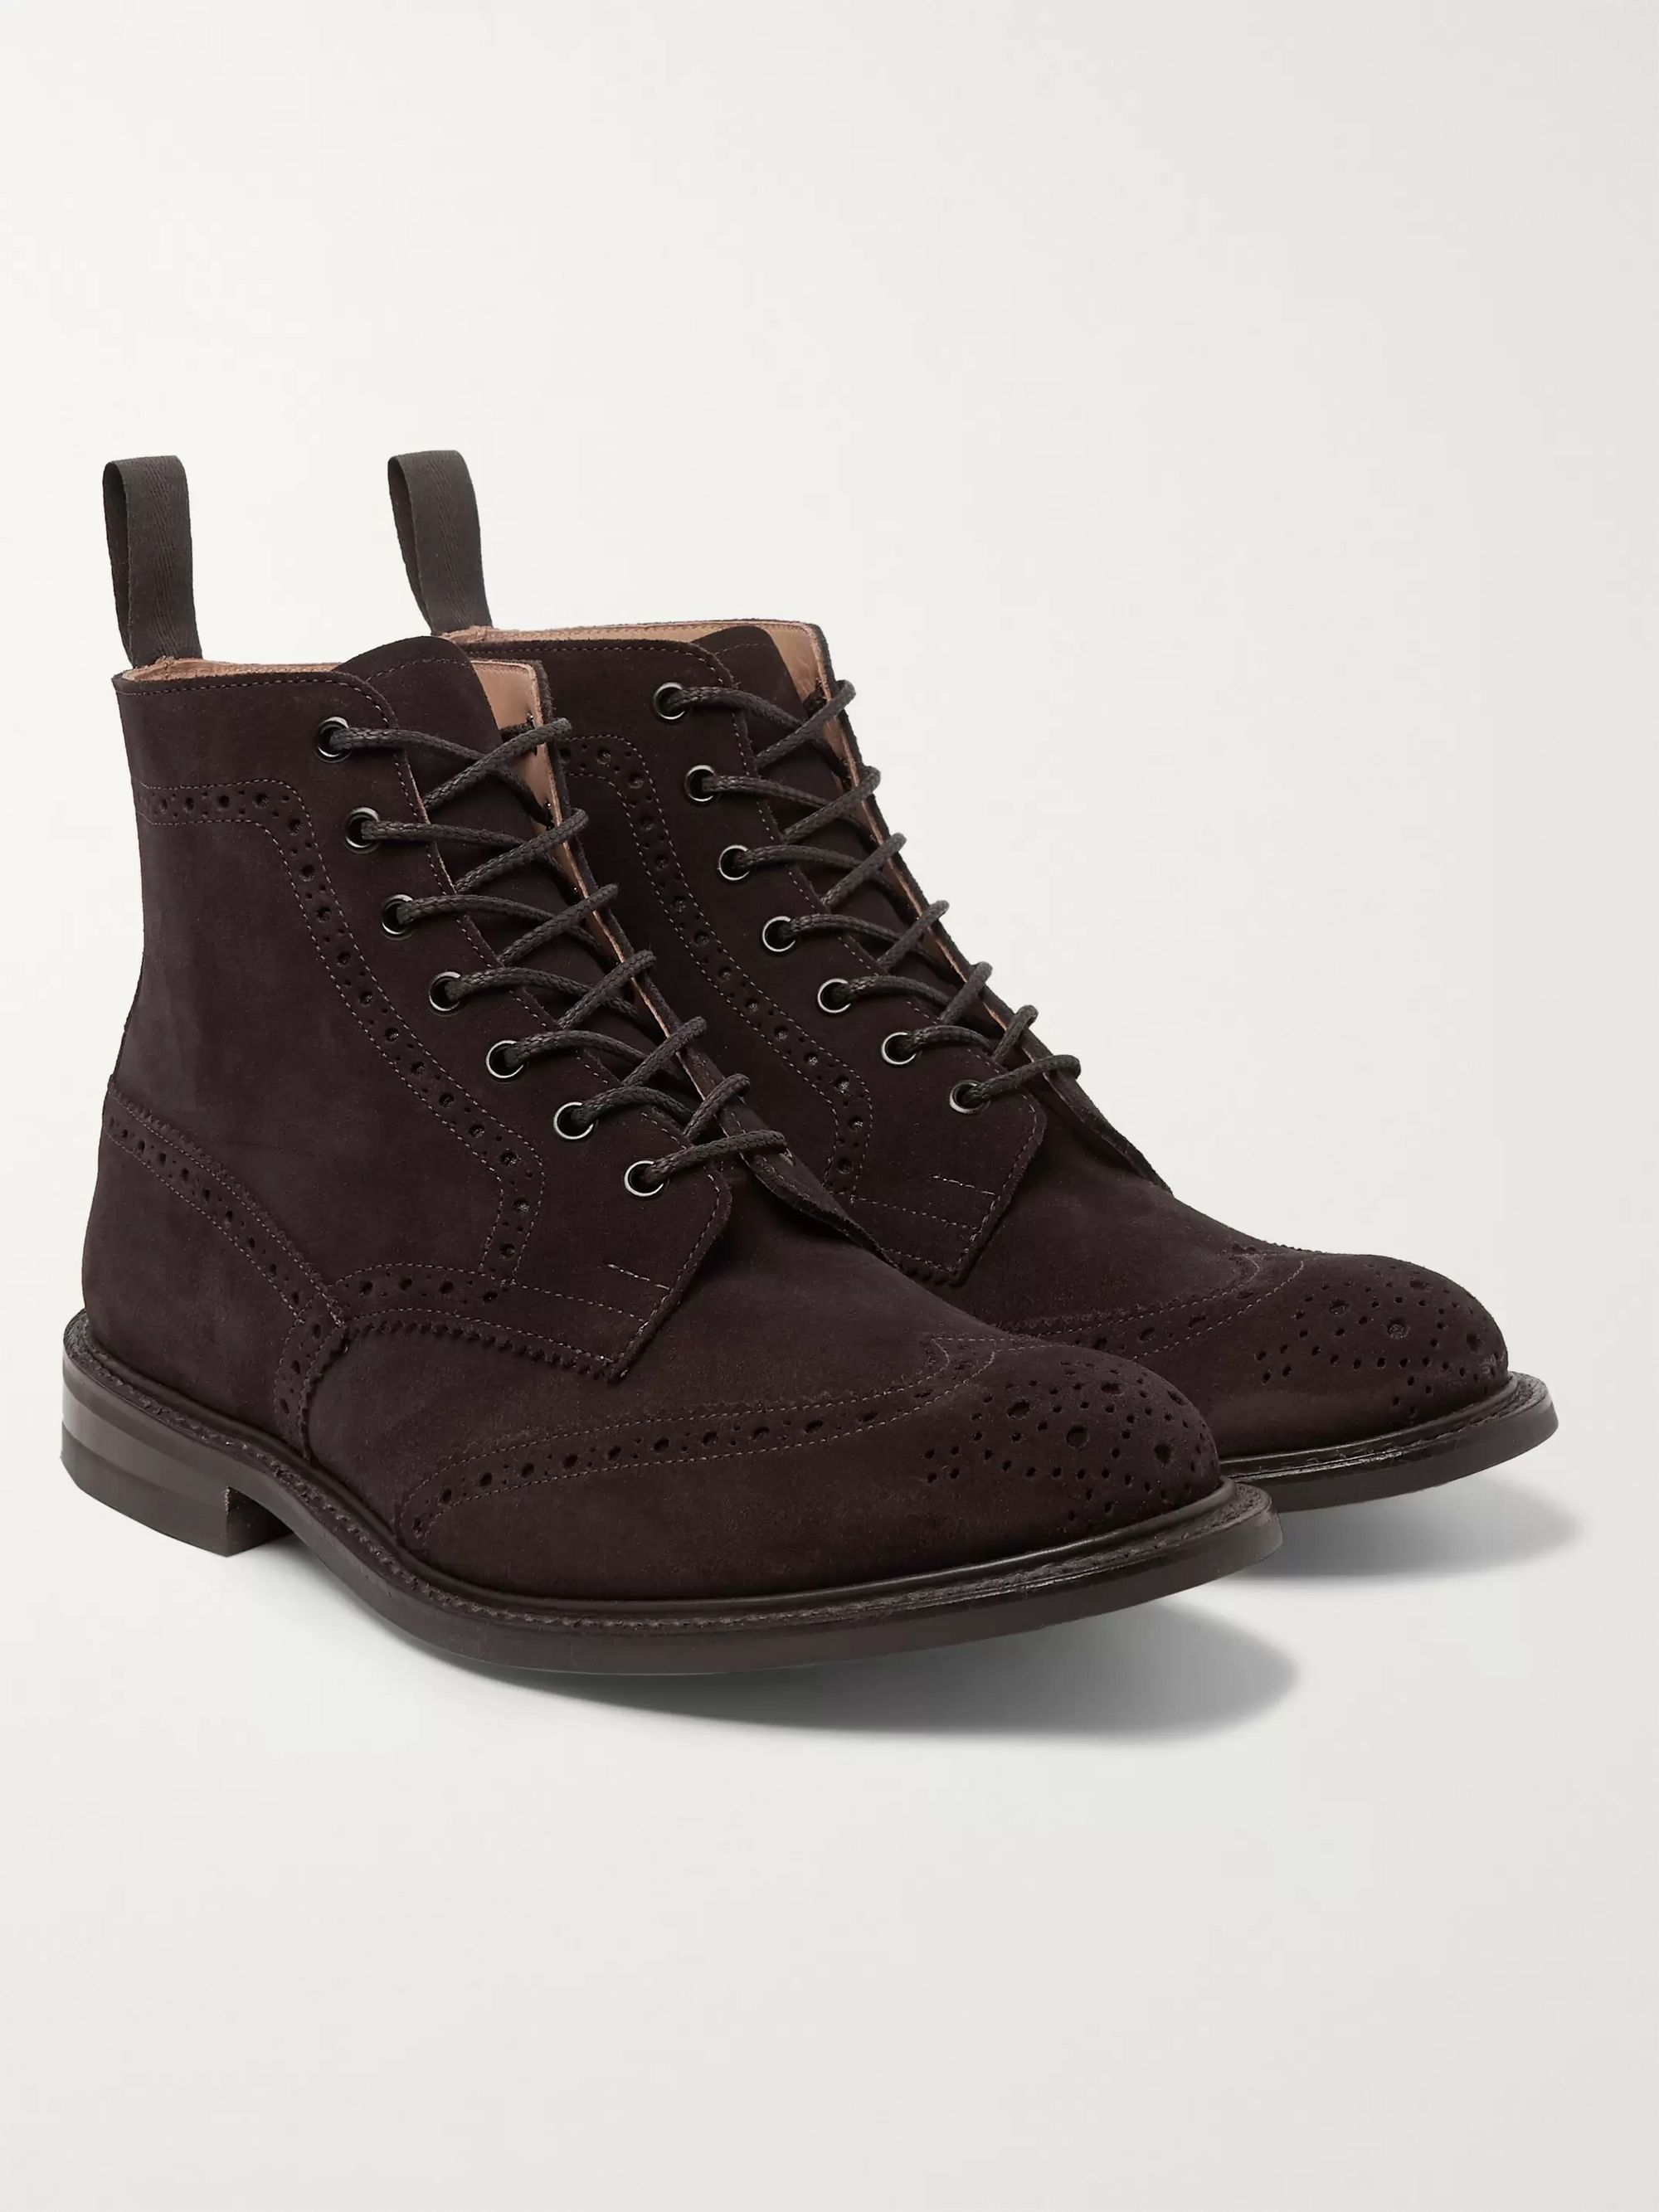 Brown Stow Suede Brogue Boots   Tricker